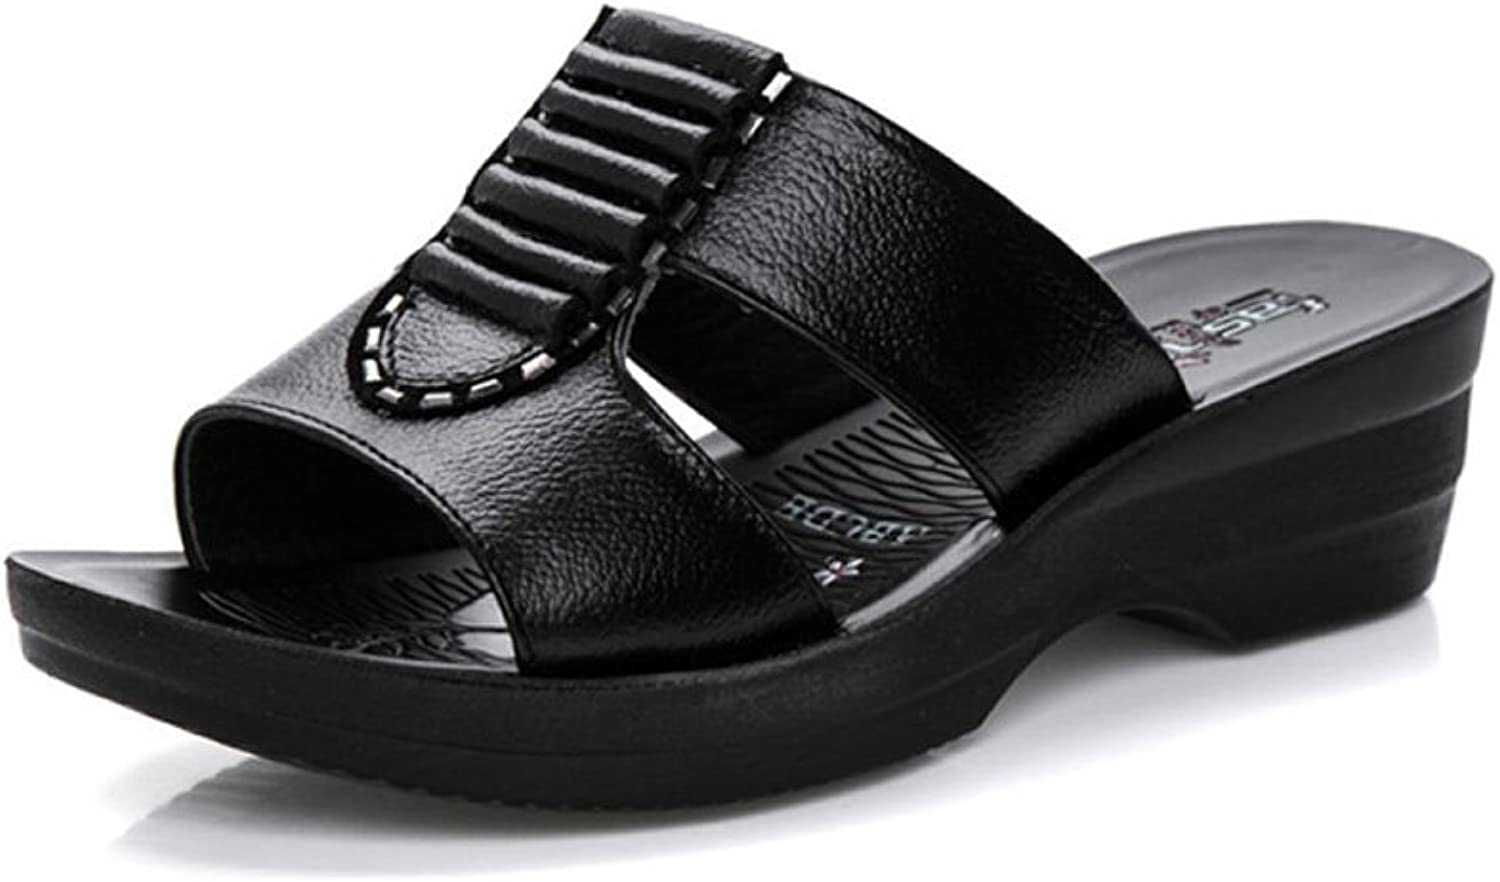 Duberess Women's Wide Fitting Casual Comfortable Real Leather Wedged Slides Sandals Ladies Summer shoes